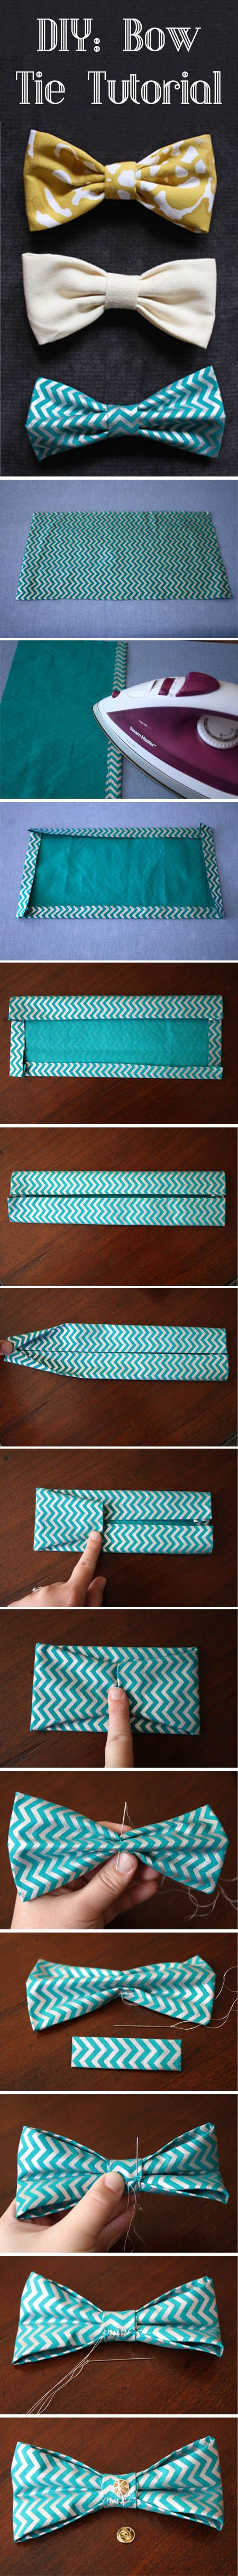 DIY bow tie tutorial Great for dogs or husbands ThisHouseIsOurHome